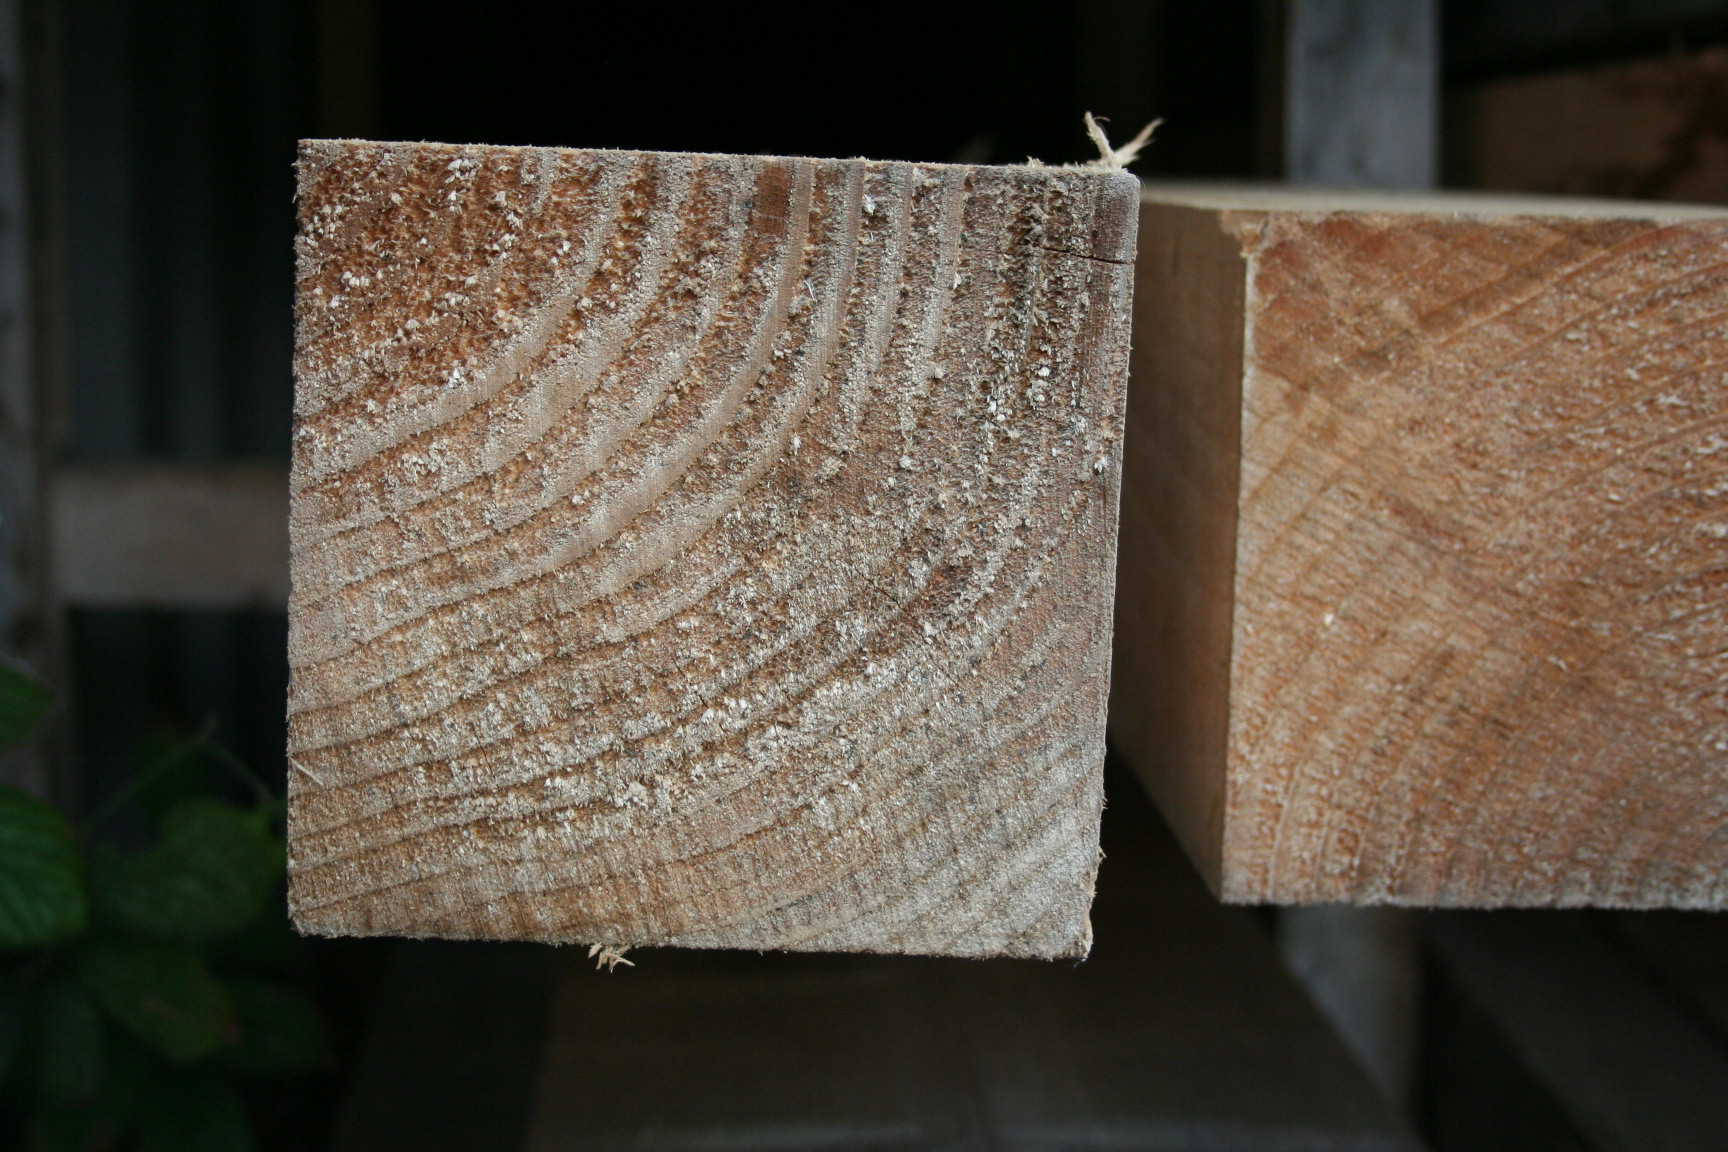 50mm x 50mm Square Planed Softwood; Image 7329